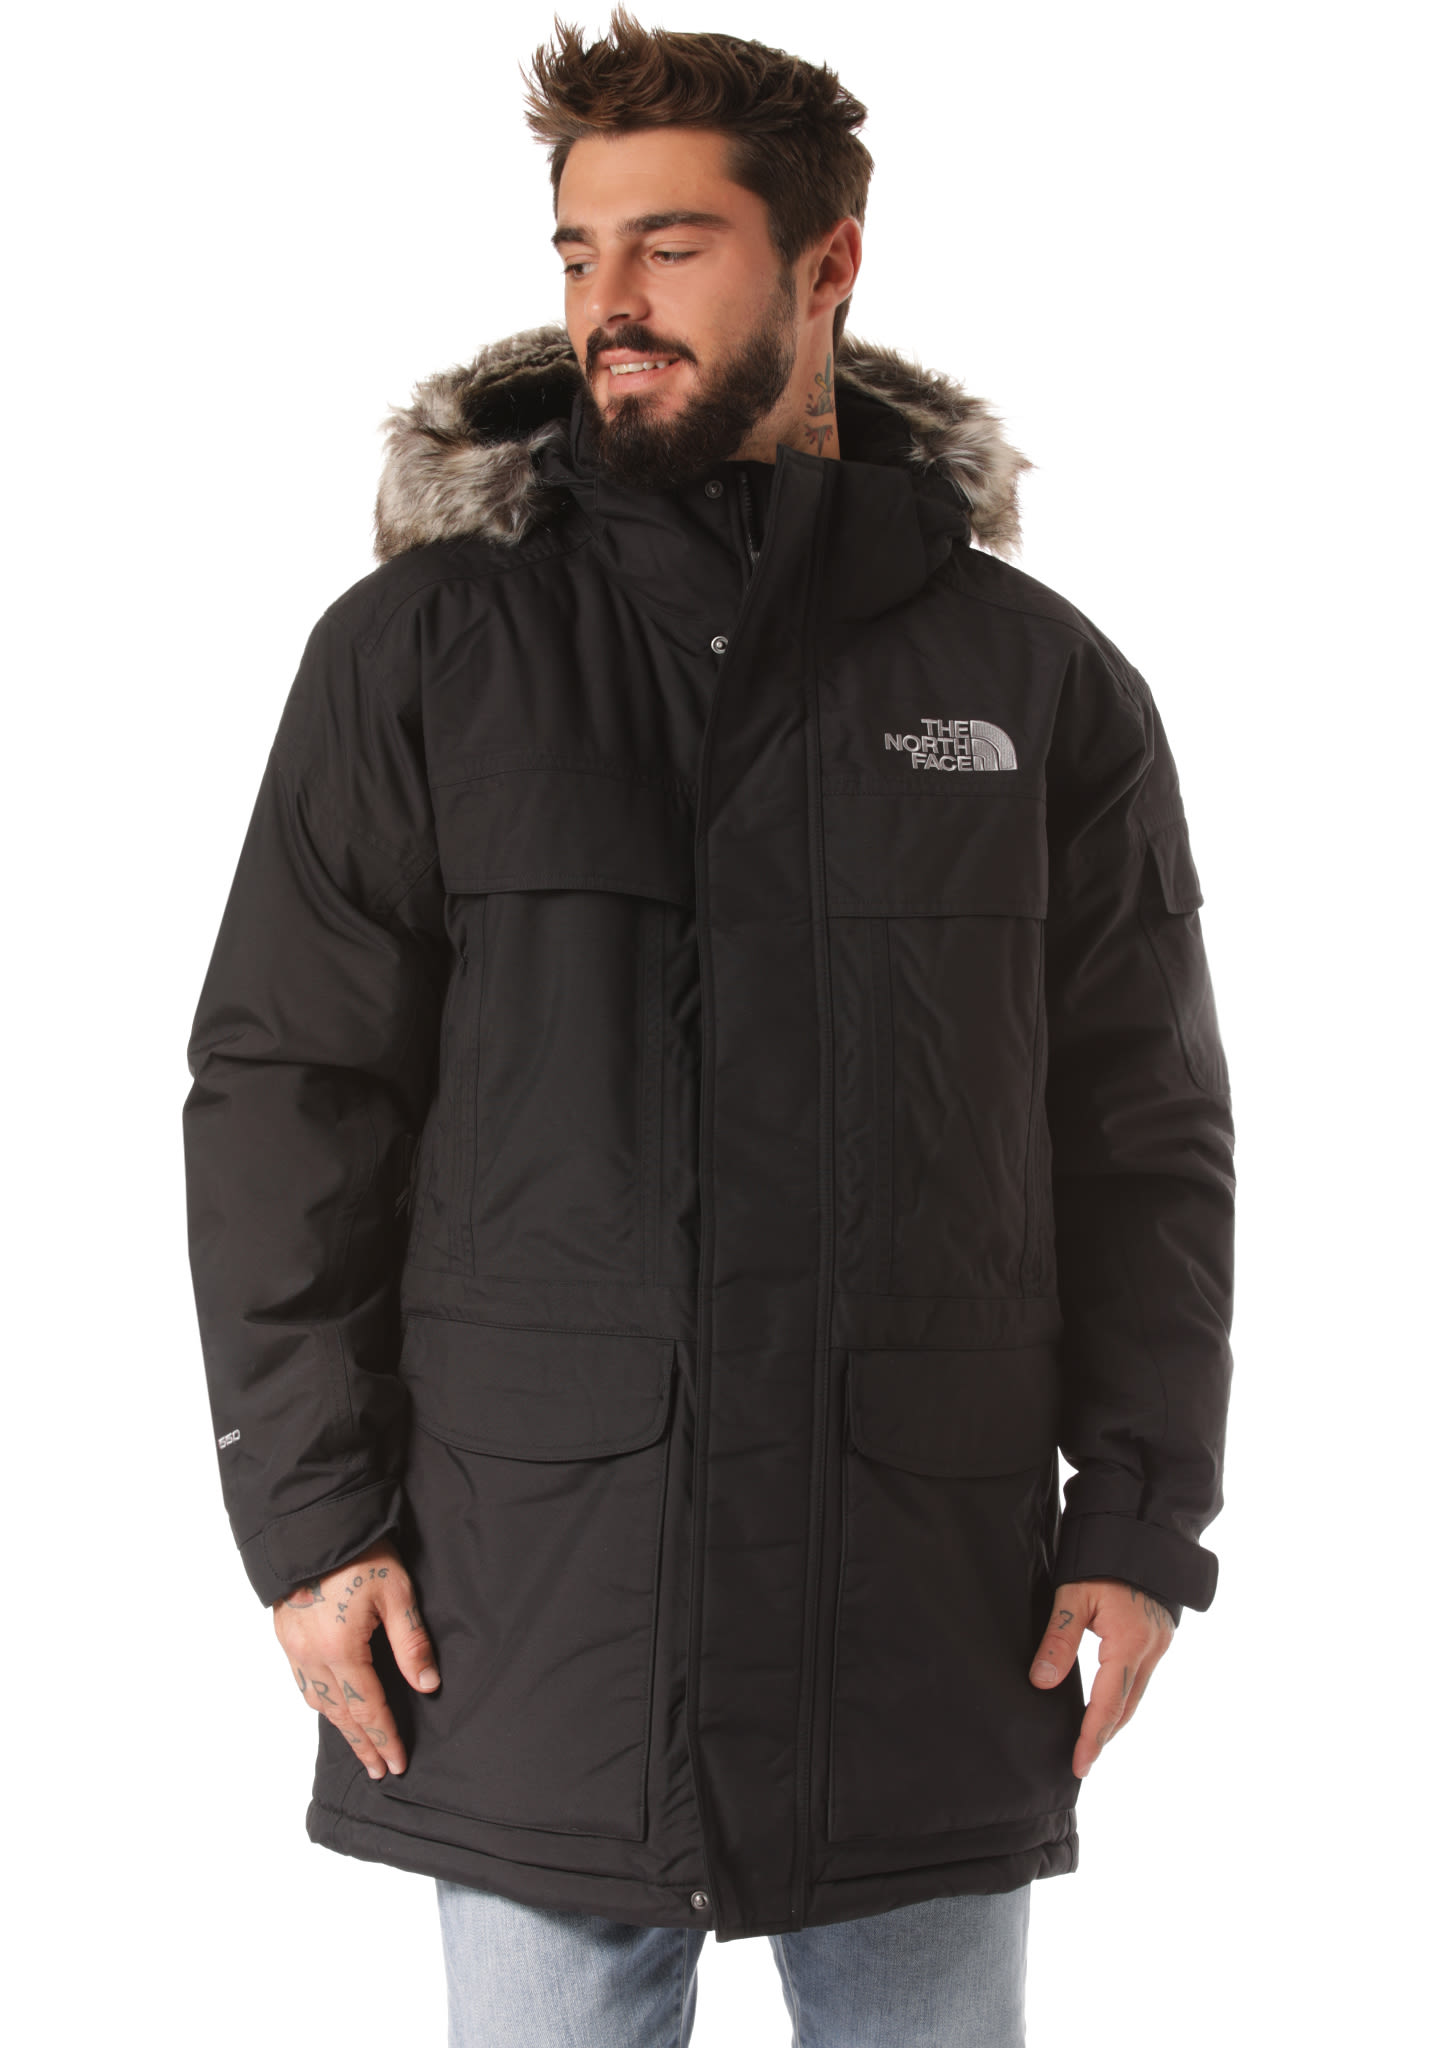 c85af20e4f870 THE NORTH FACE Mcmurdo - Functional Jacket for Men - Black - Planet Sports